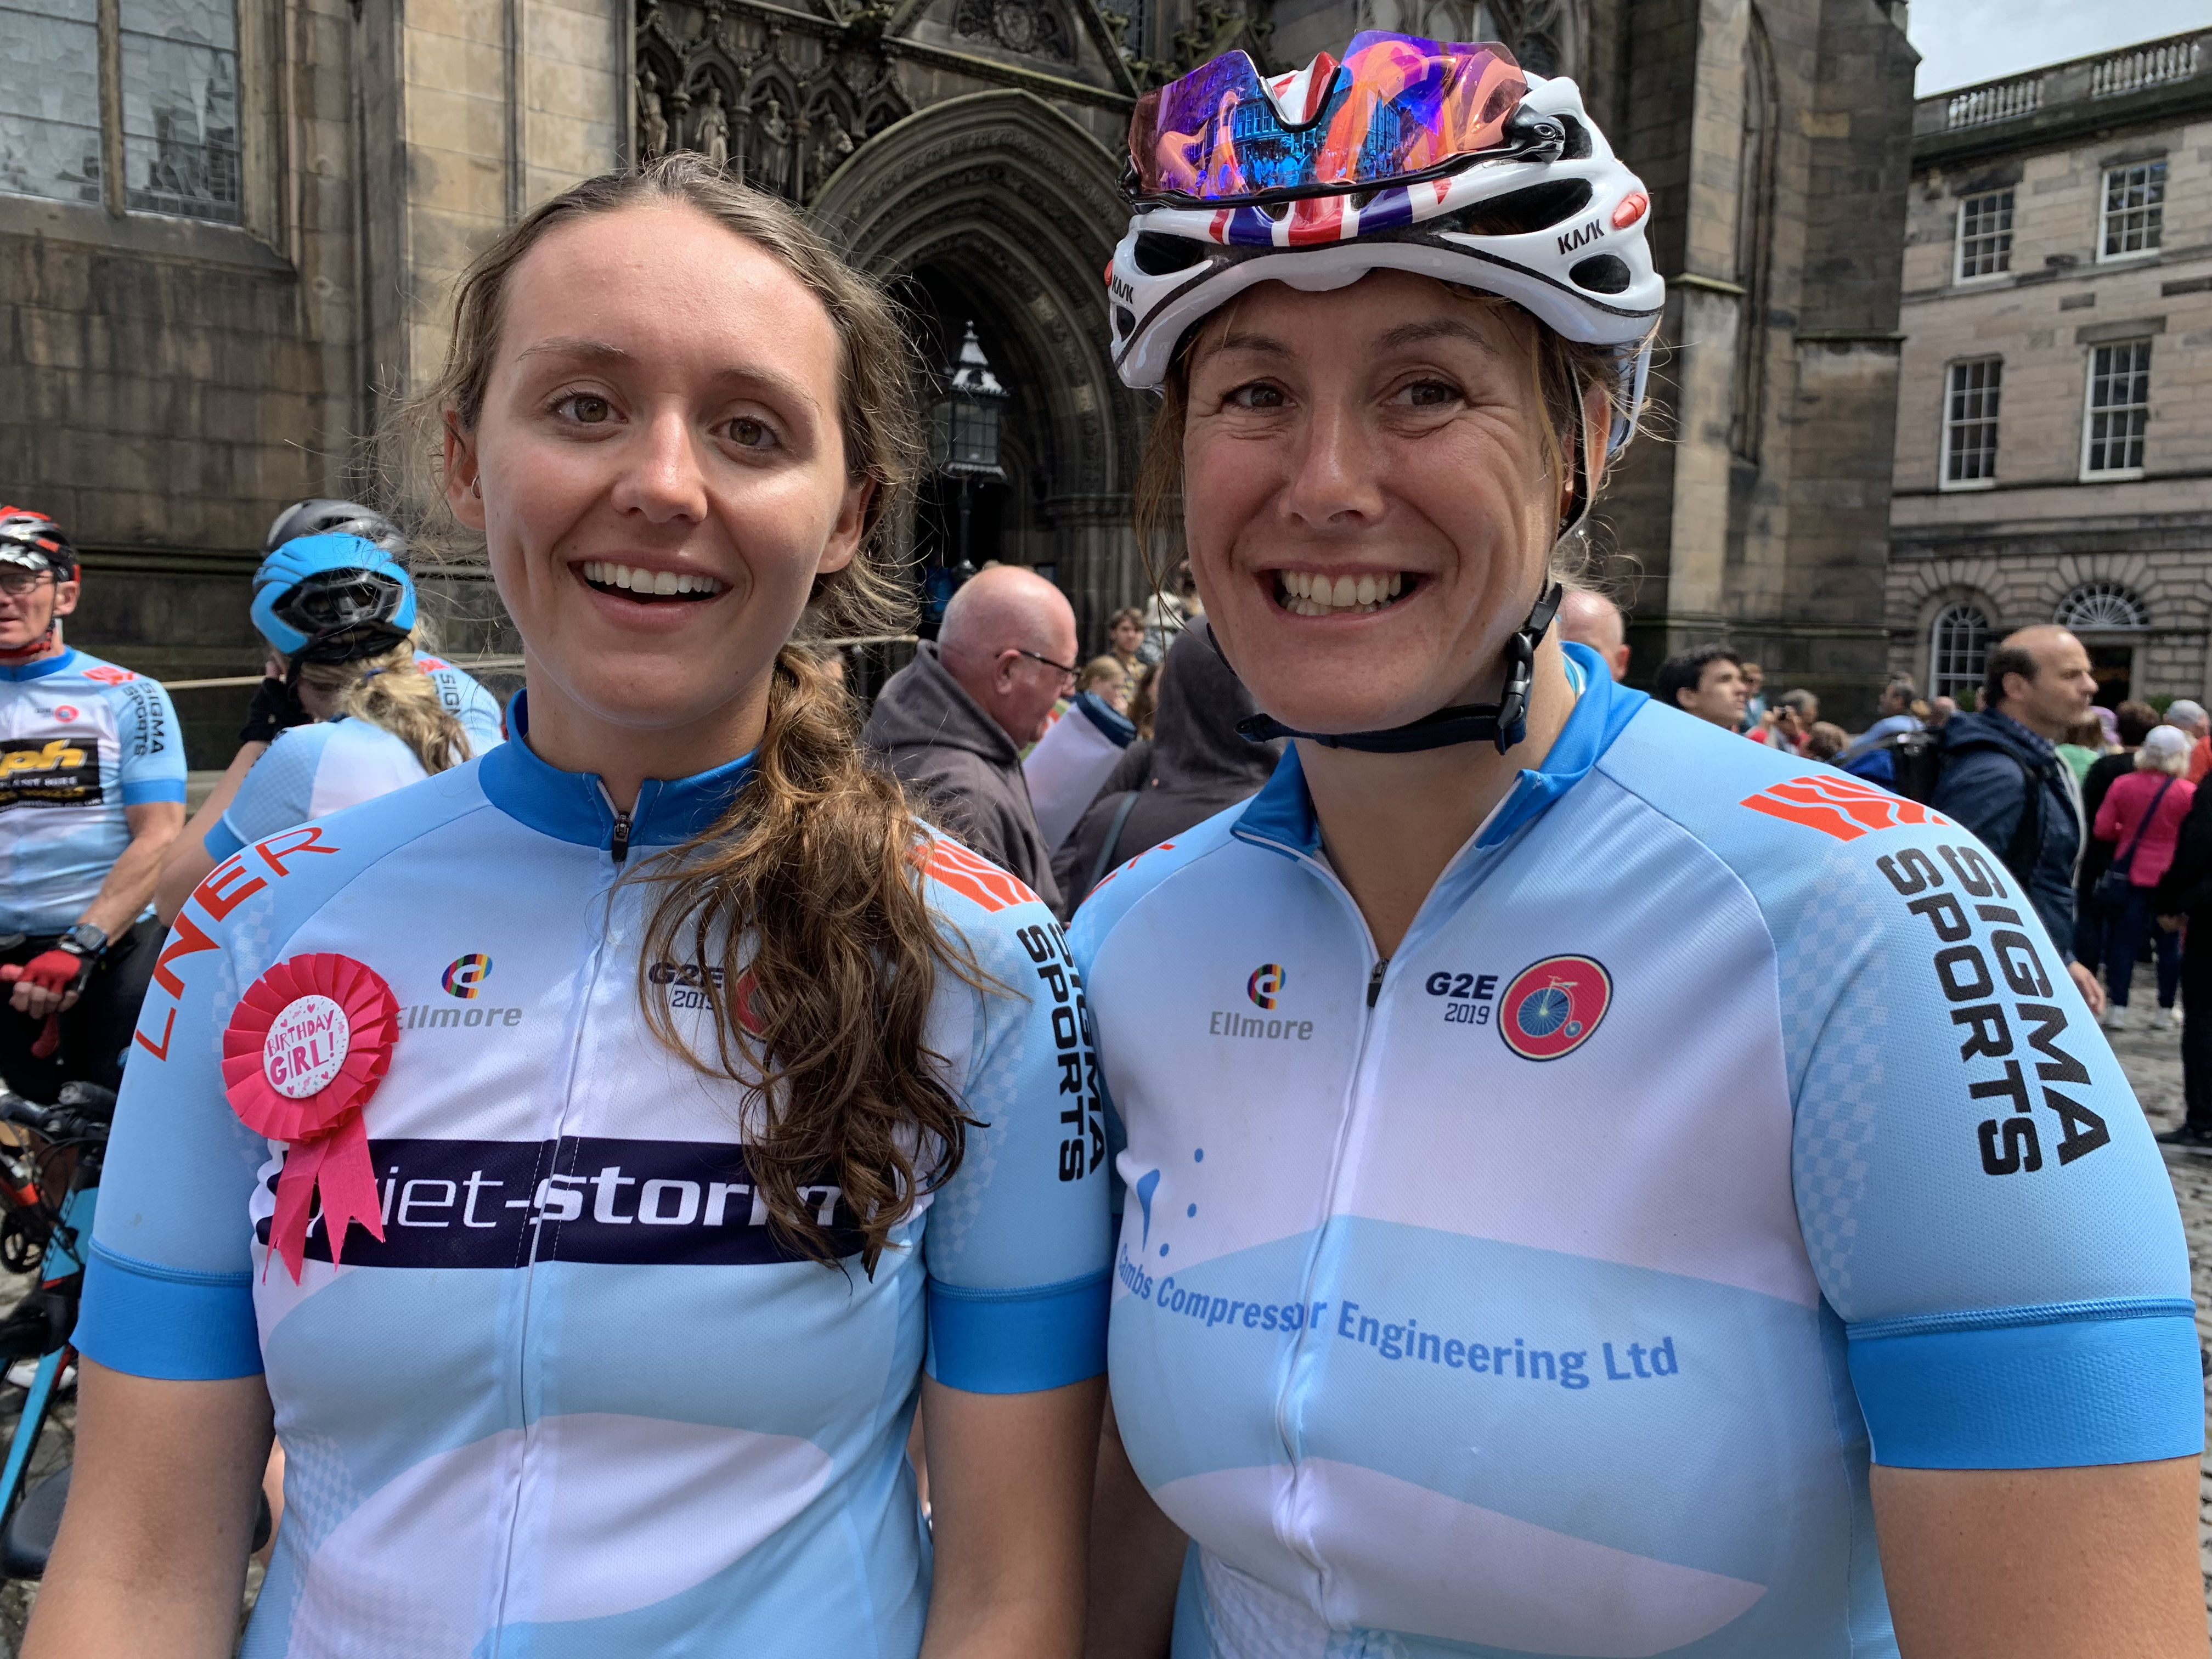 Director's pedal power helps to raise more than £20,000 for charity